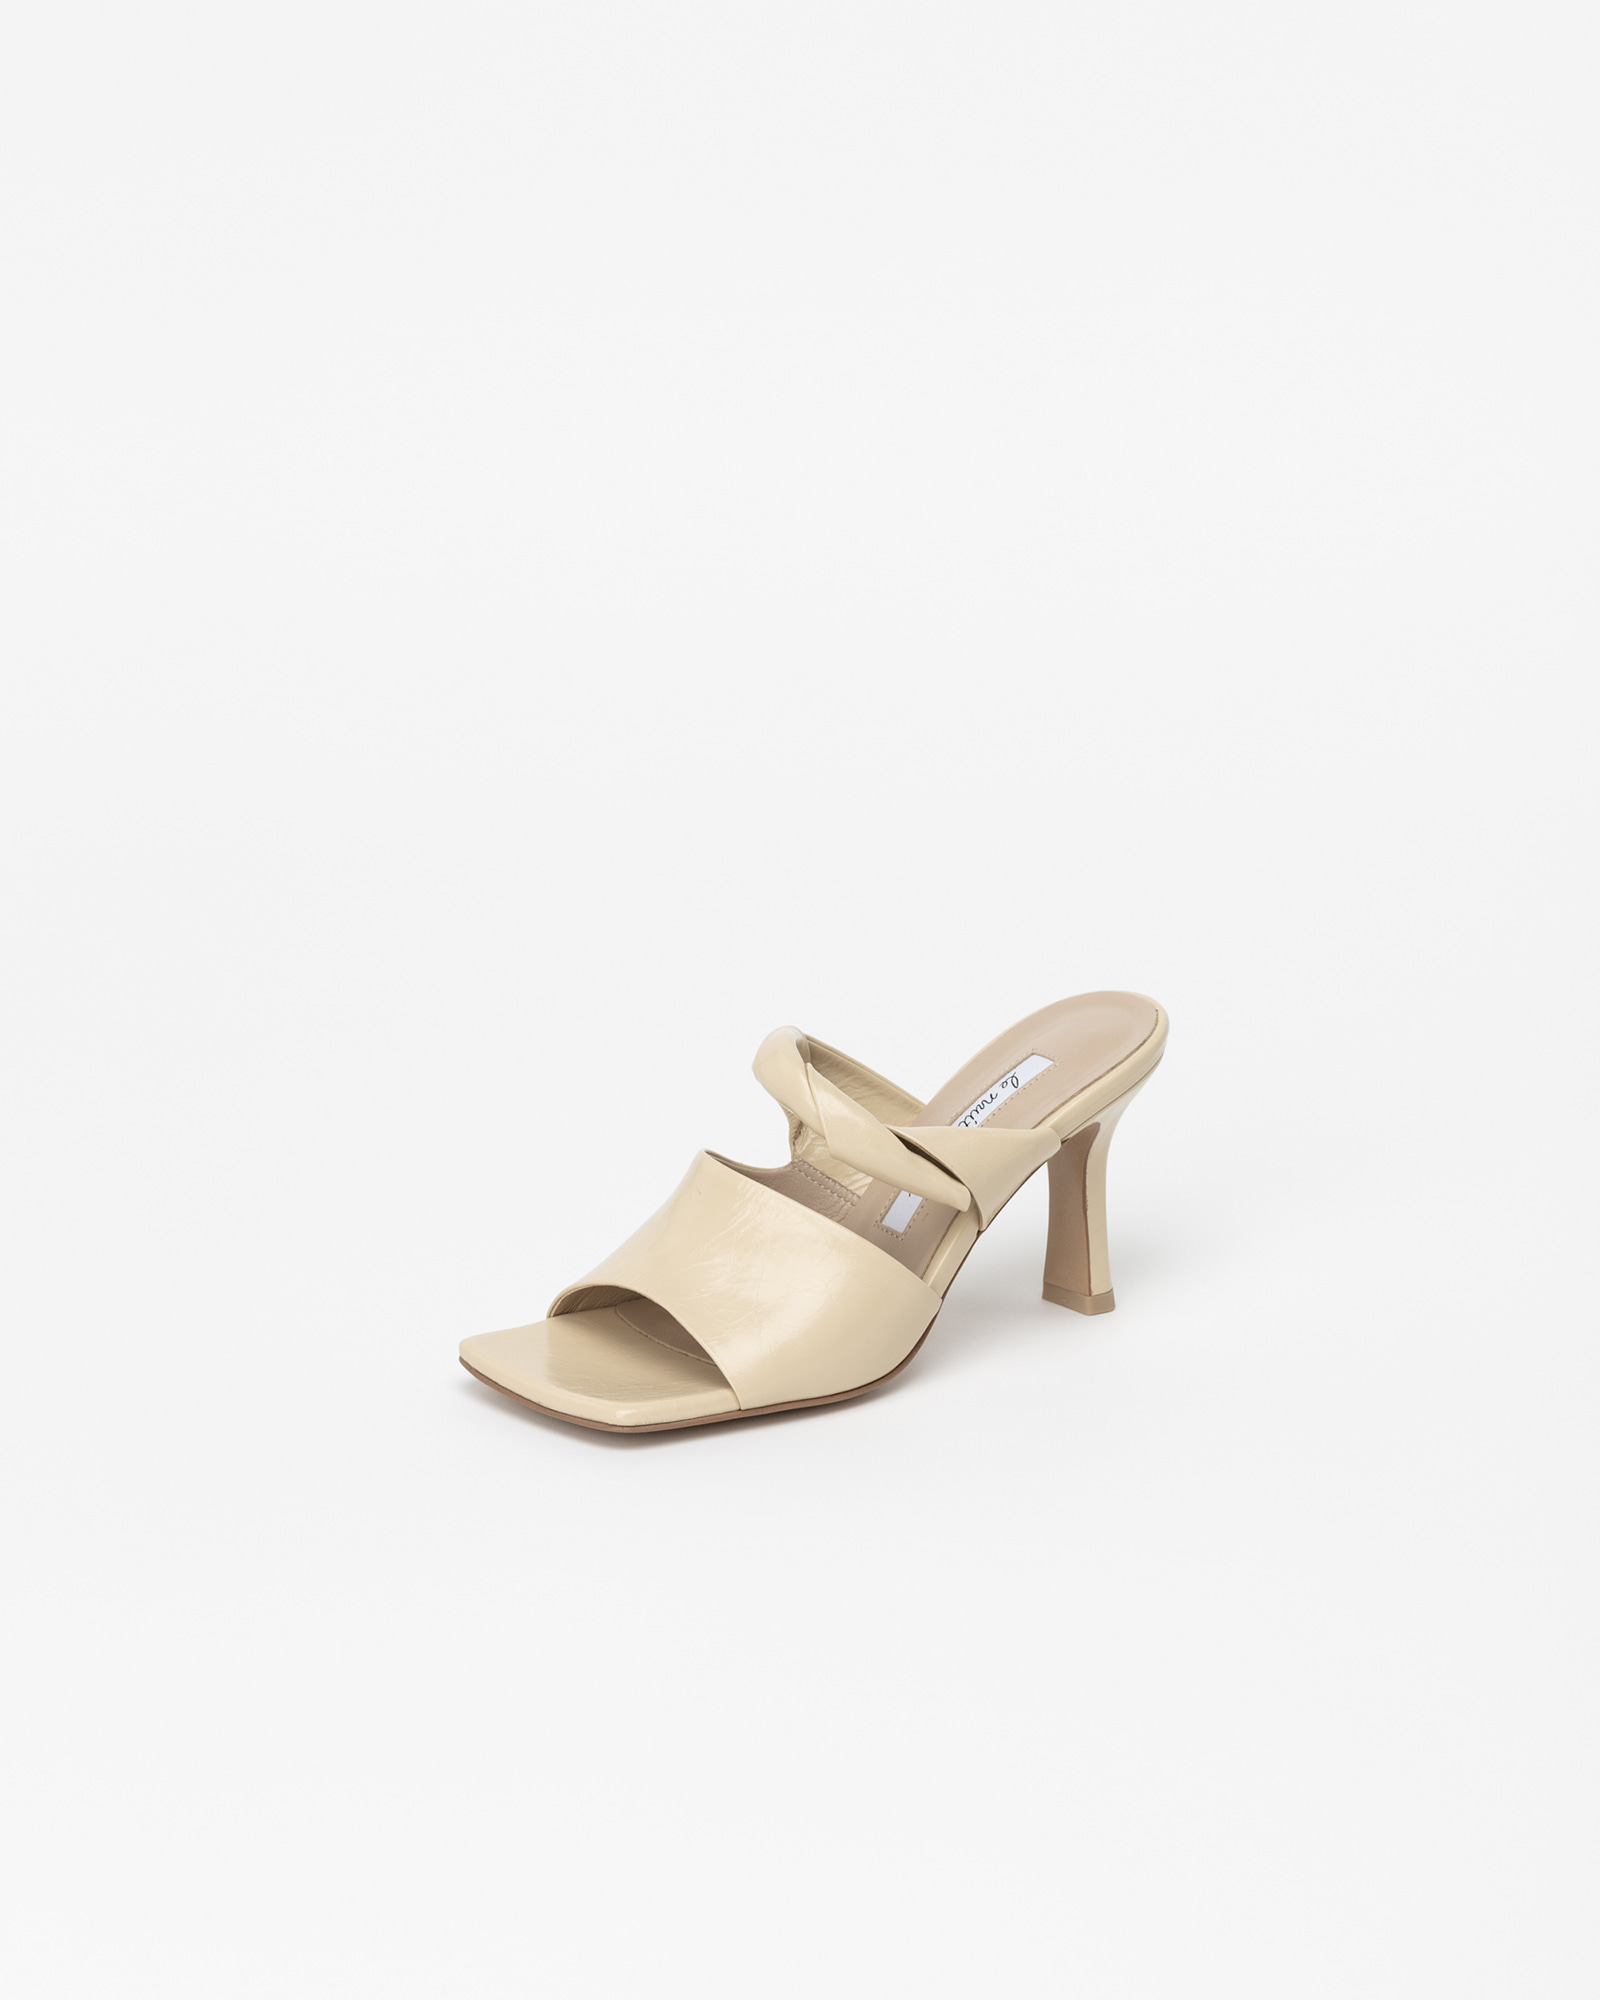 Baldini Mules in Wrinkled Light Yellow